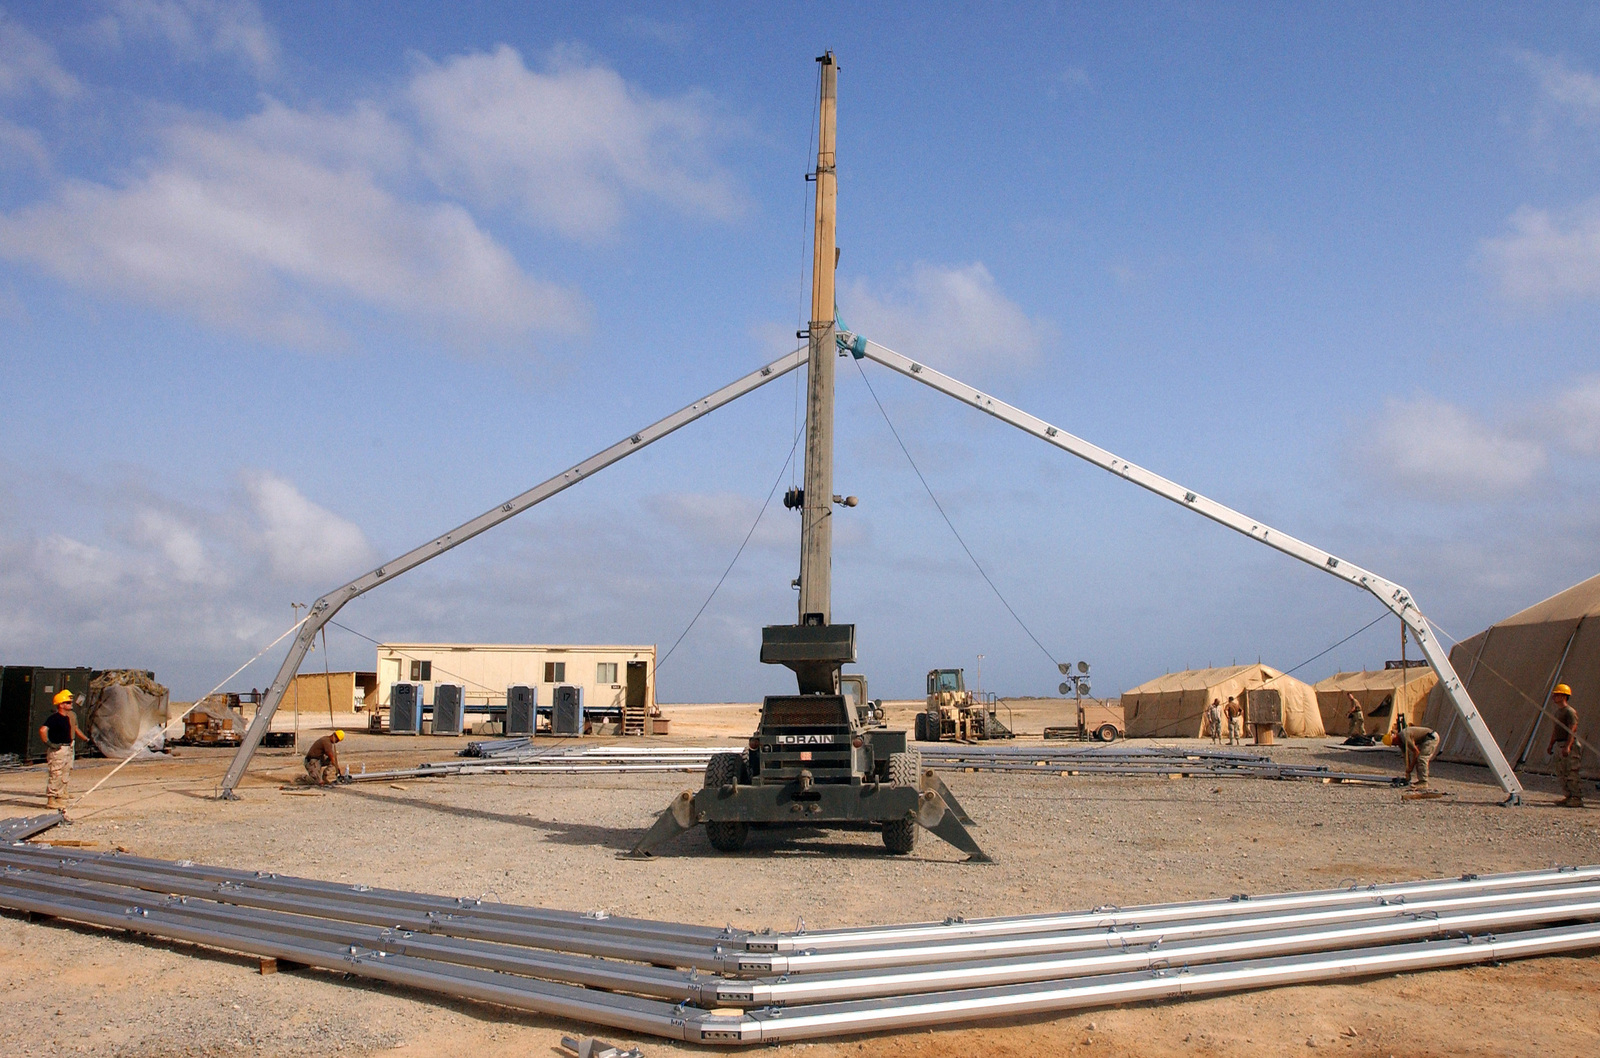 US Air Force (USAF) personnel from the 49th Materiel Maintenance Group (MMG) Basic Expeditionary Airfield Resources (BEAR) Base Team, Holloman Air Force Base (AFB), New Mexico (NM), and the 321st Expeditionary Civil Engineer Squadron  (ECES) Structures Team use a light Lorain hydraulic crane to erect a Large Area Maintenance Shelter (LAMS). The shelter will store and protect aircraft equipment from the elements during Operation IRAQI FREEDOM